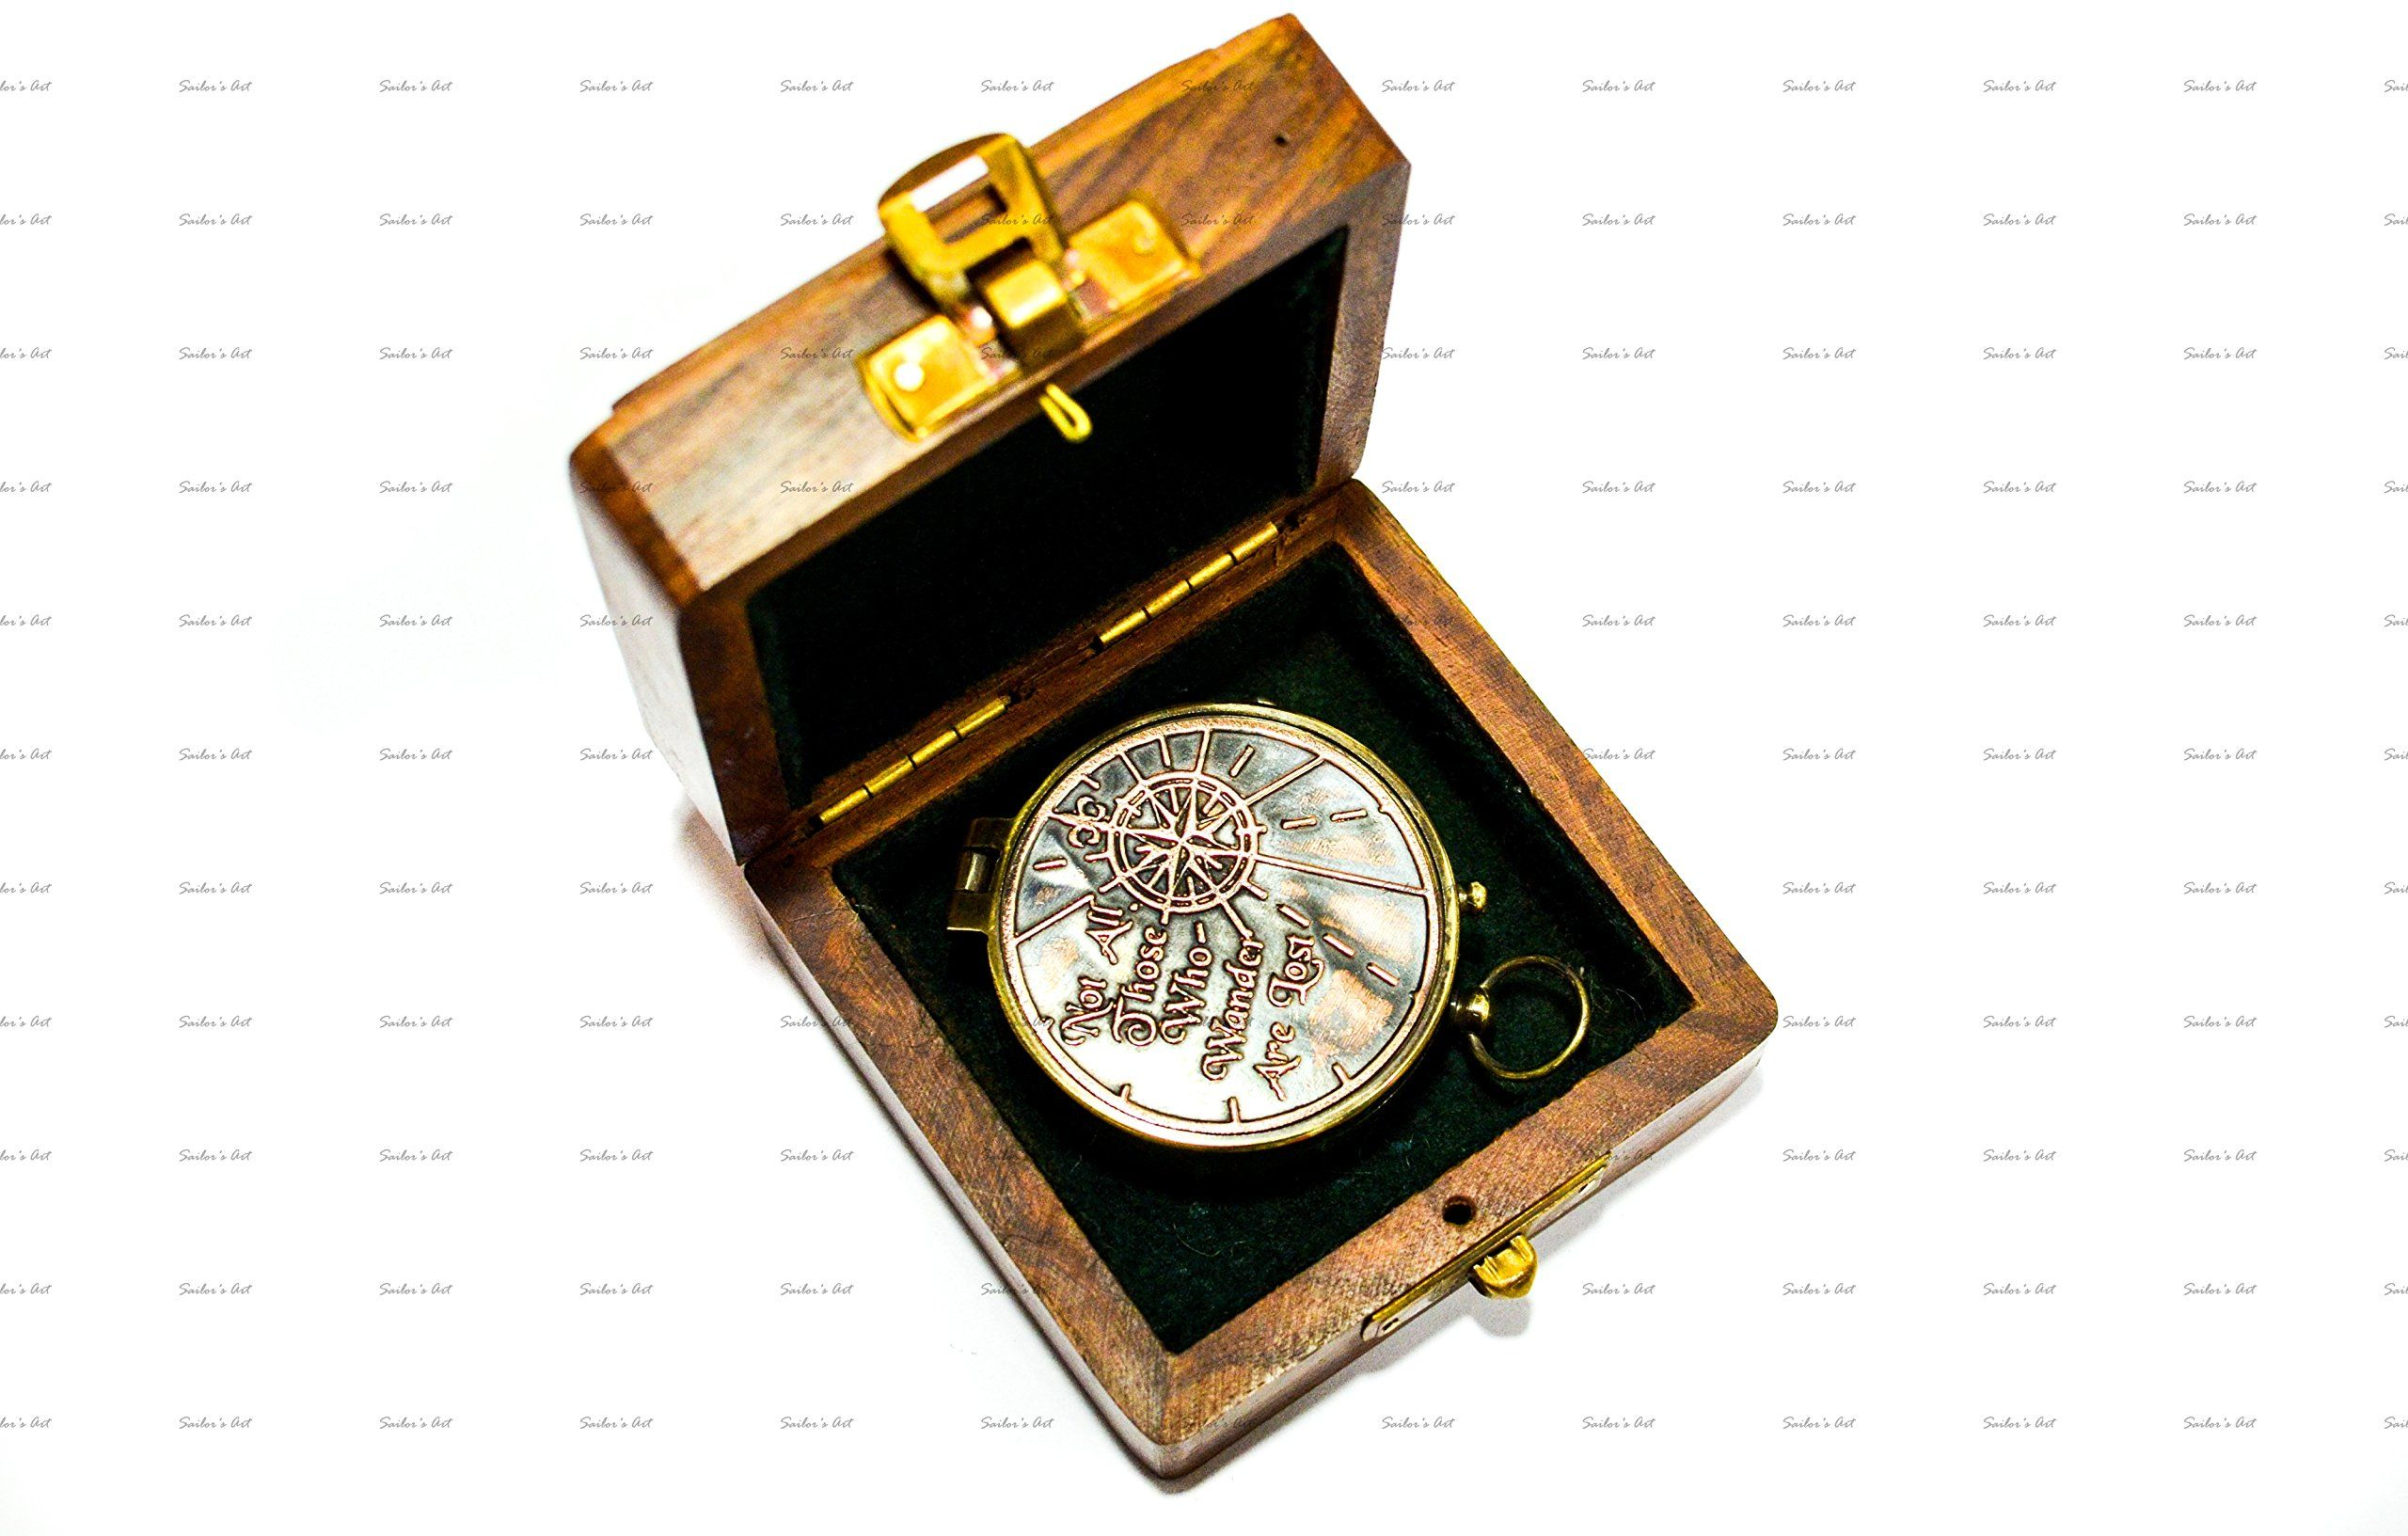 Sailors Art Antique Brass Compass 2 With Shesham Wooden Box Vintage Antique Home Da C Cor And Gift Embossed Quote Not All Wooden Boxes Personalized Gifts Gifts